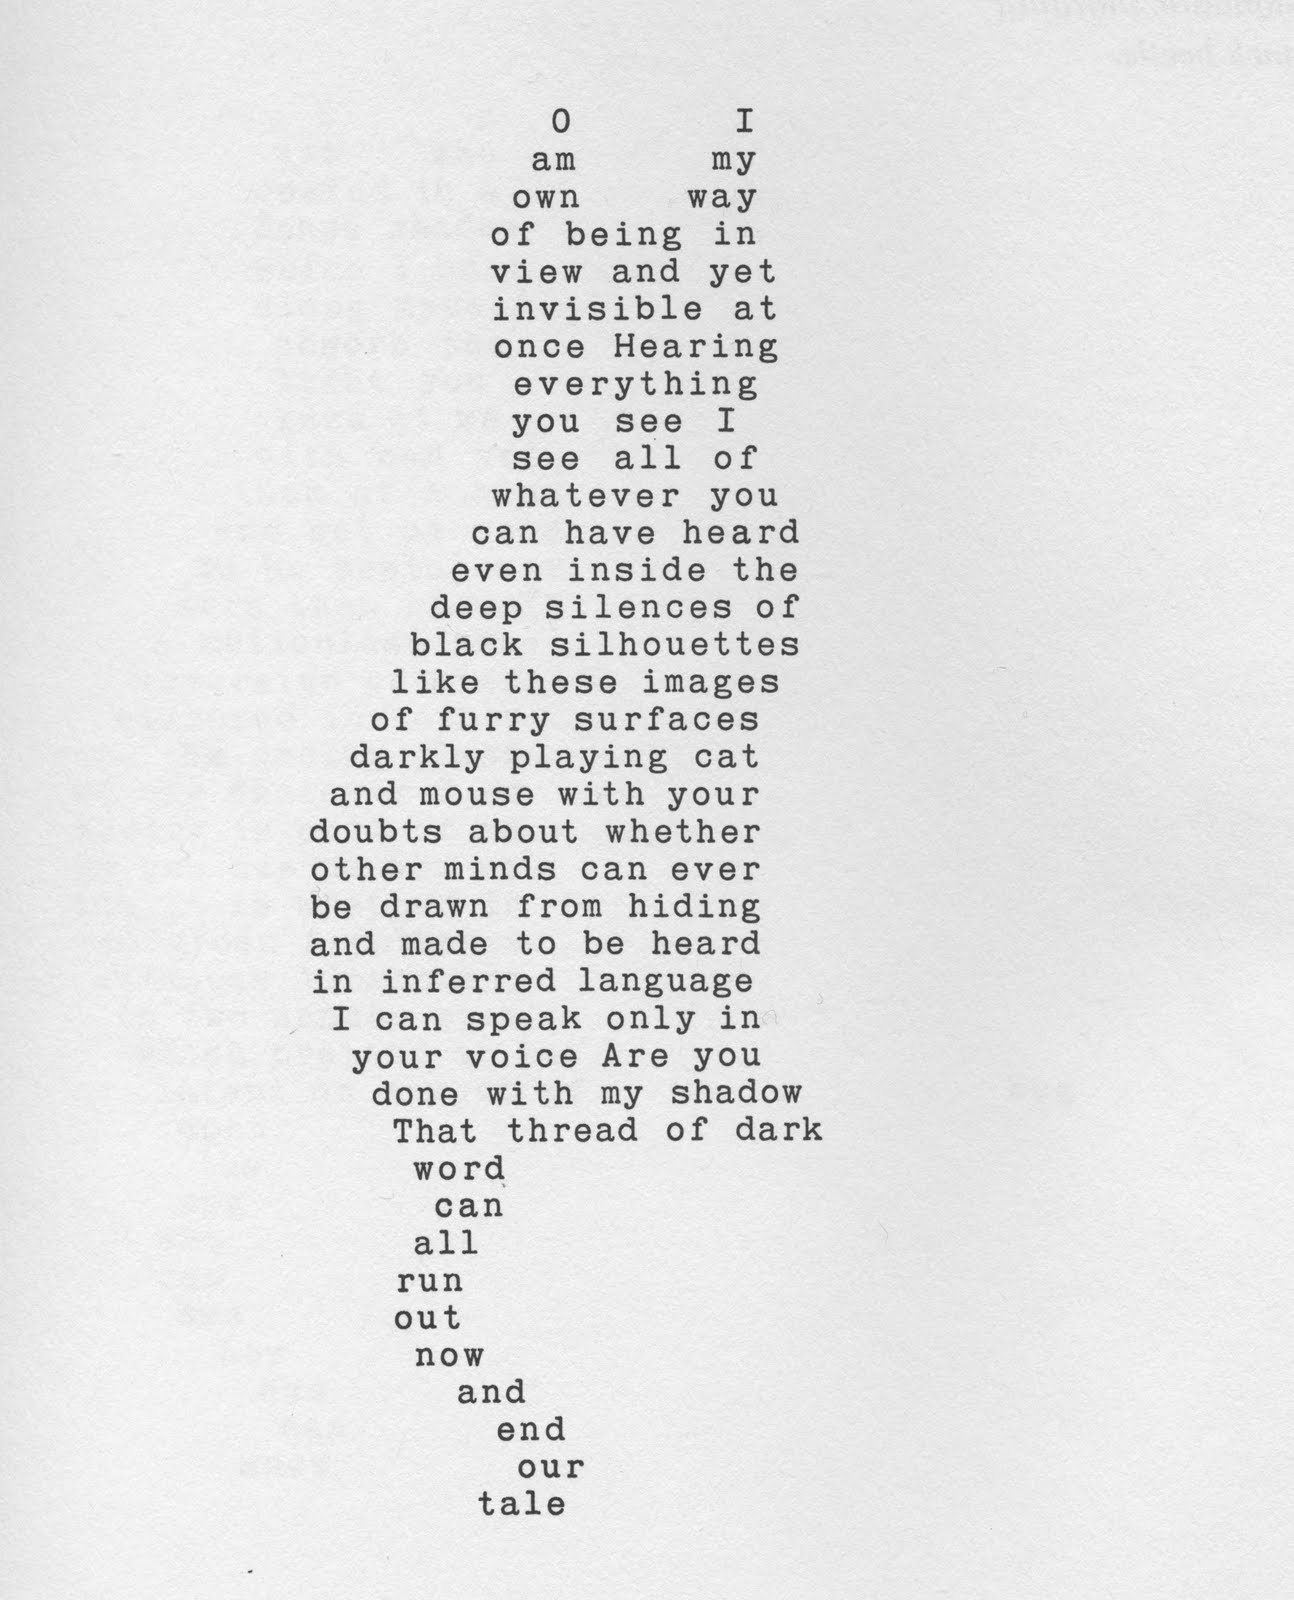 Attempts: John Hollander's Shaped Poems (Accidental Poetry